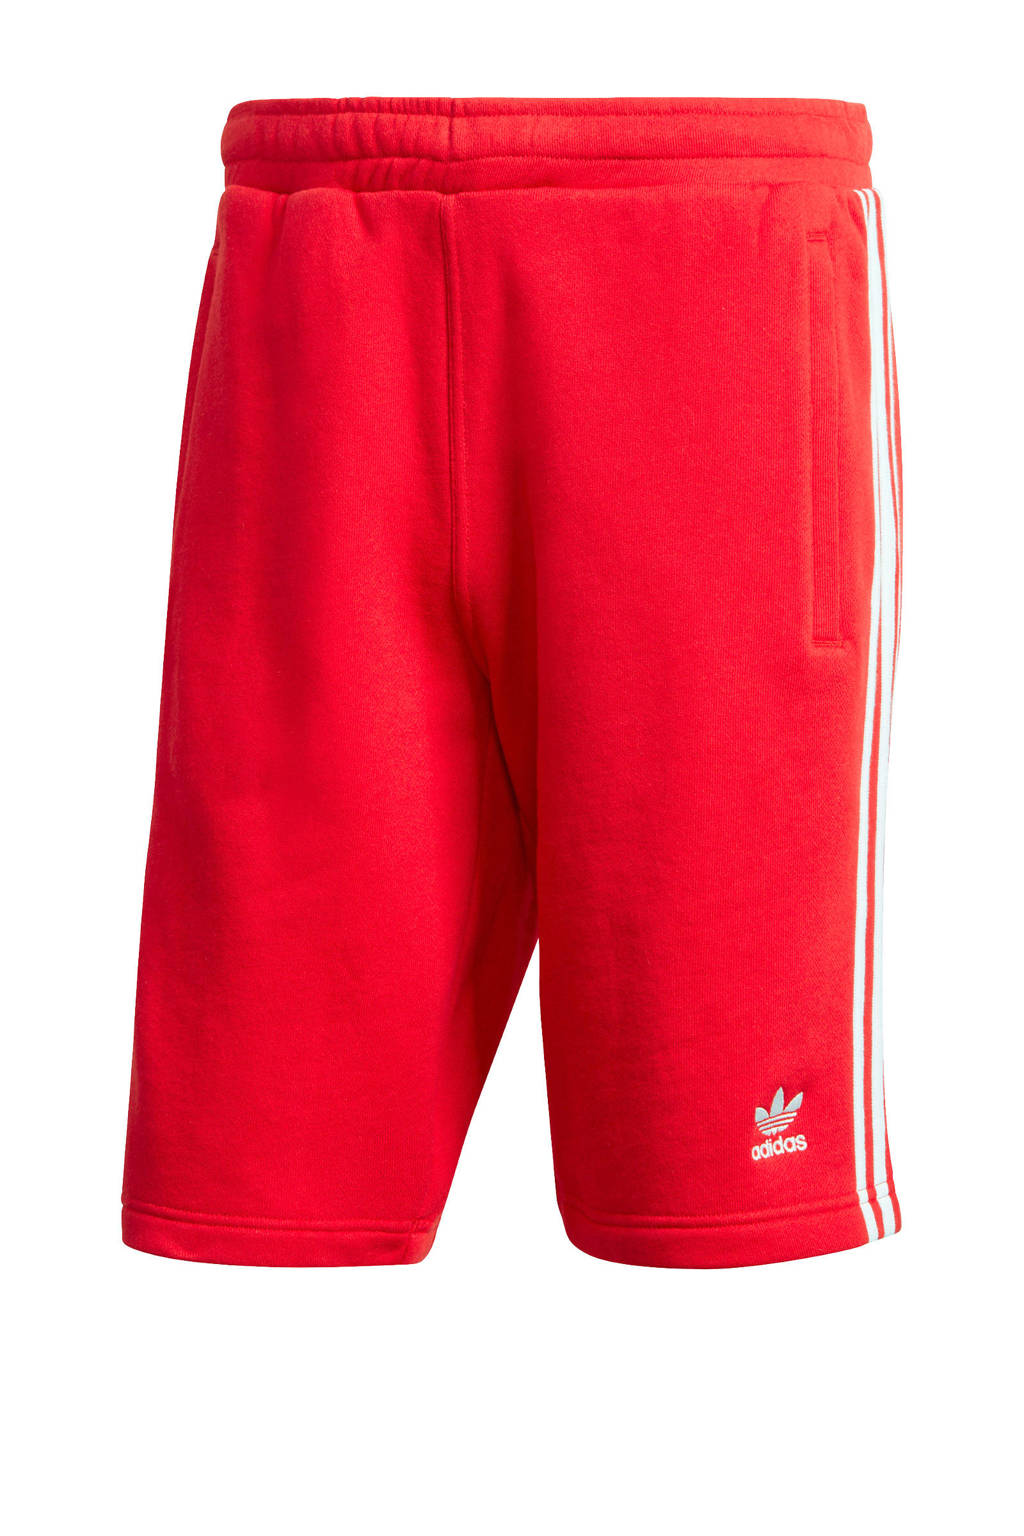 adidas Originals   short rood, Rood